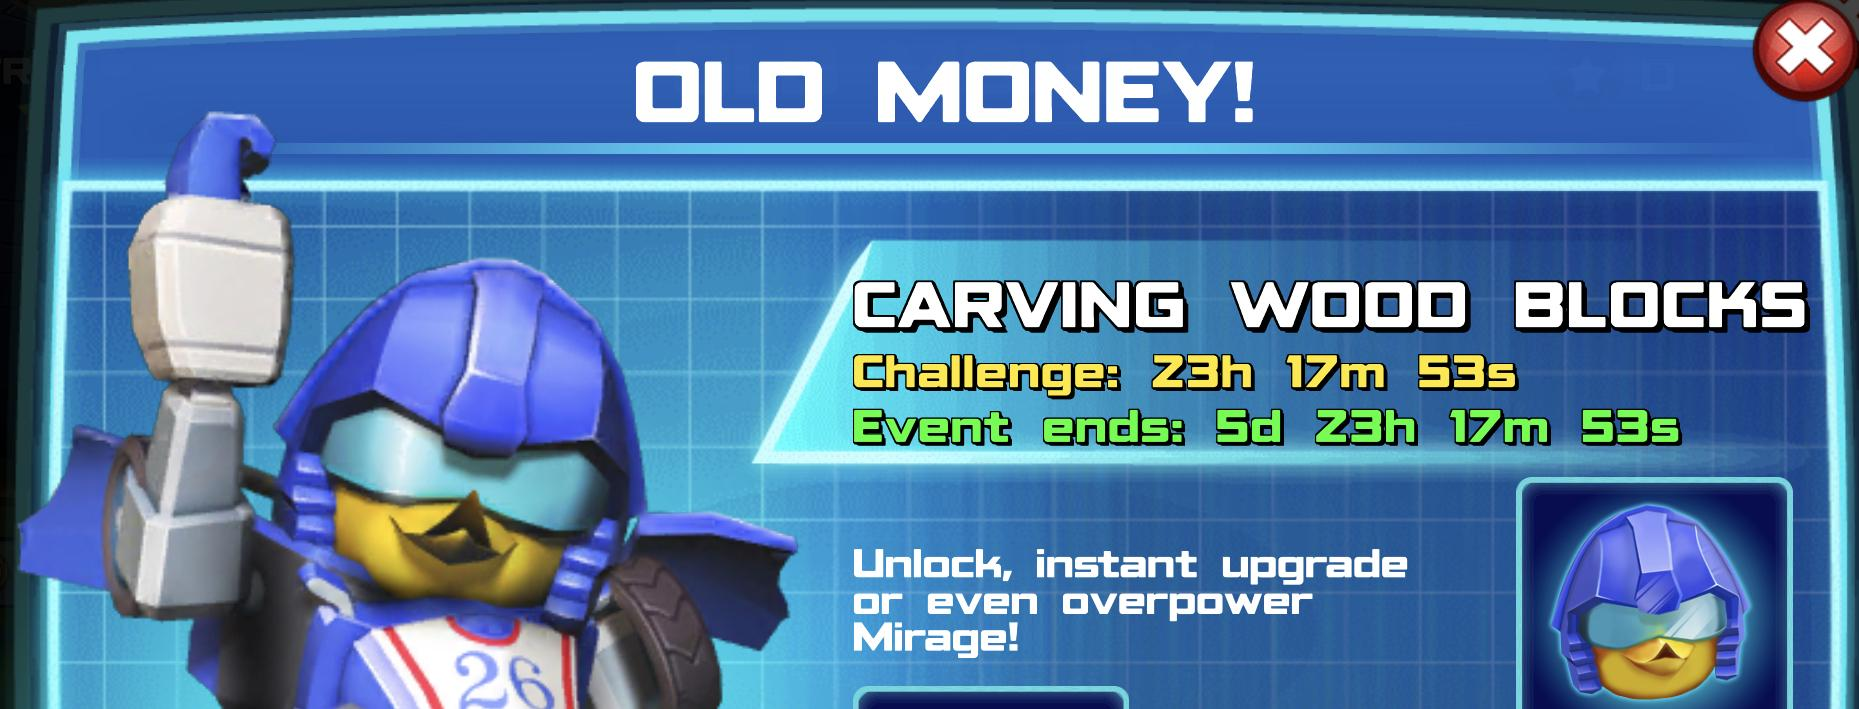 The Event Banner for Old Money!